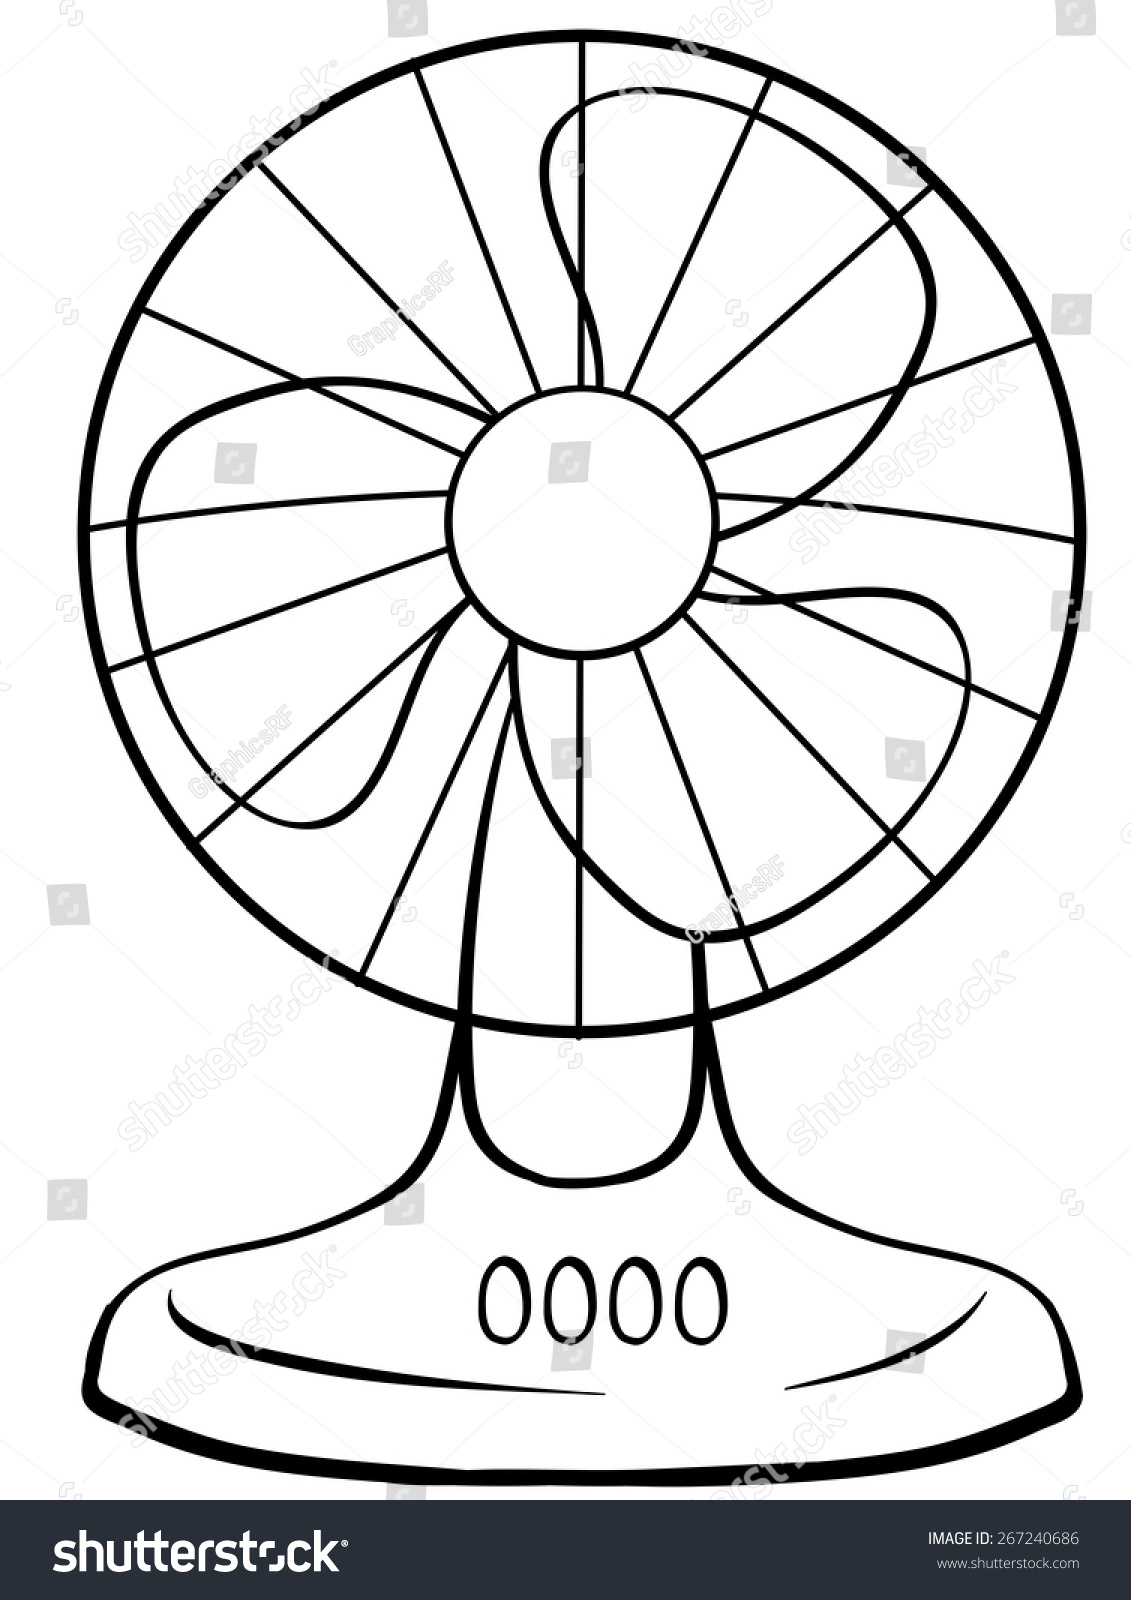 Electric fan clipart black and white 6 » Clipart Station.